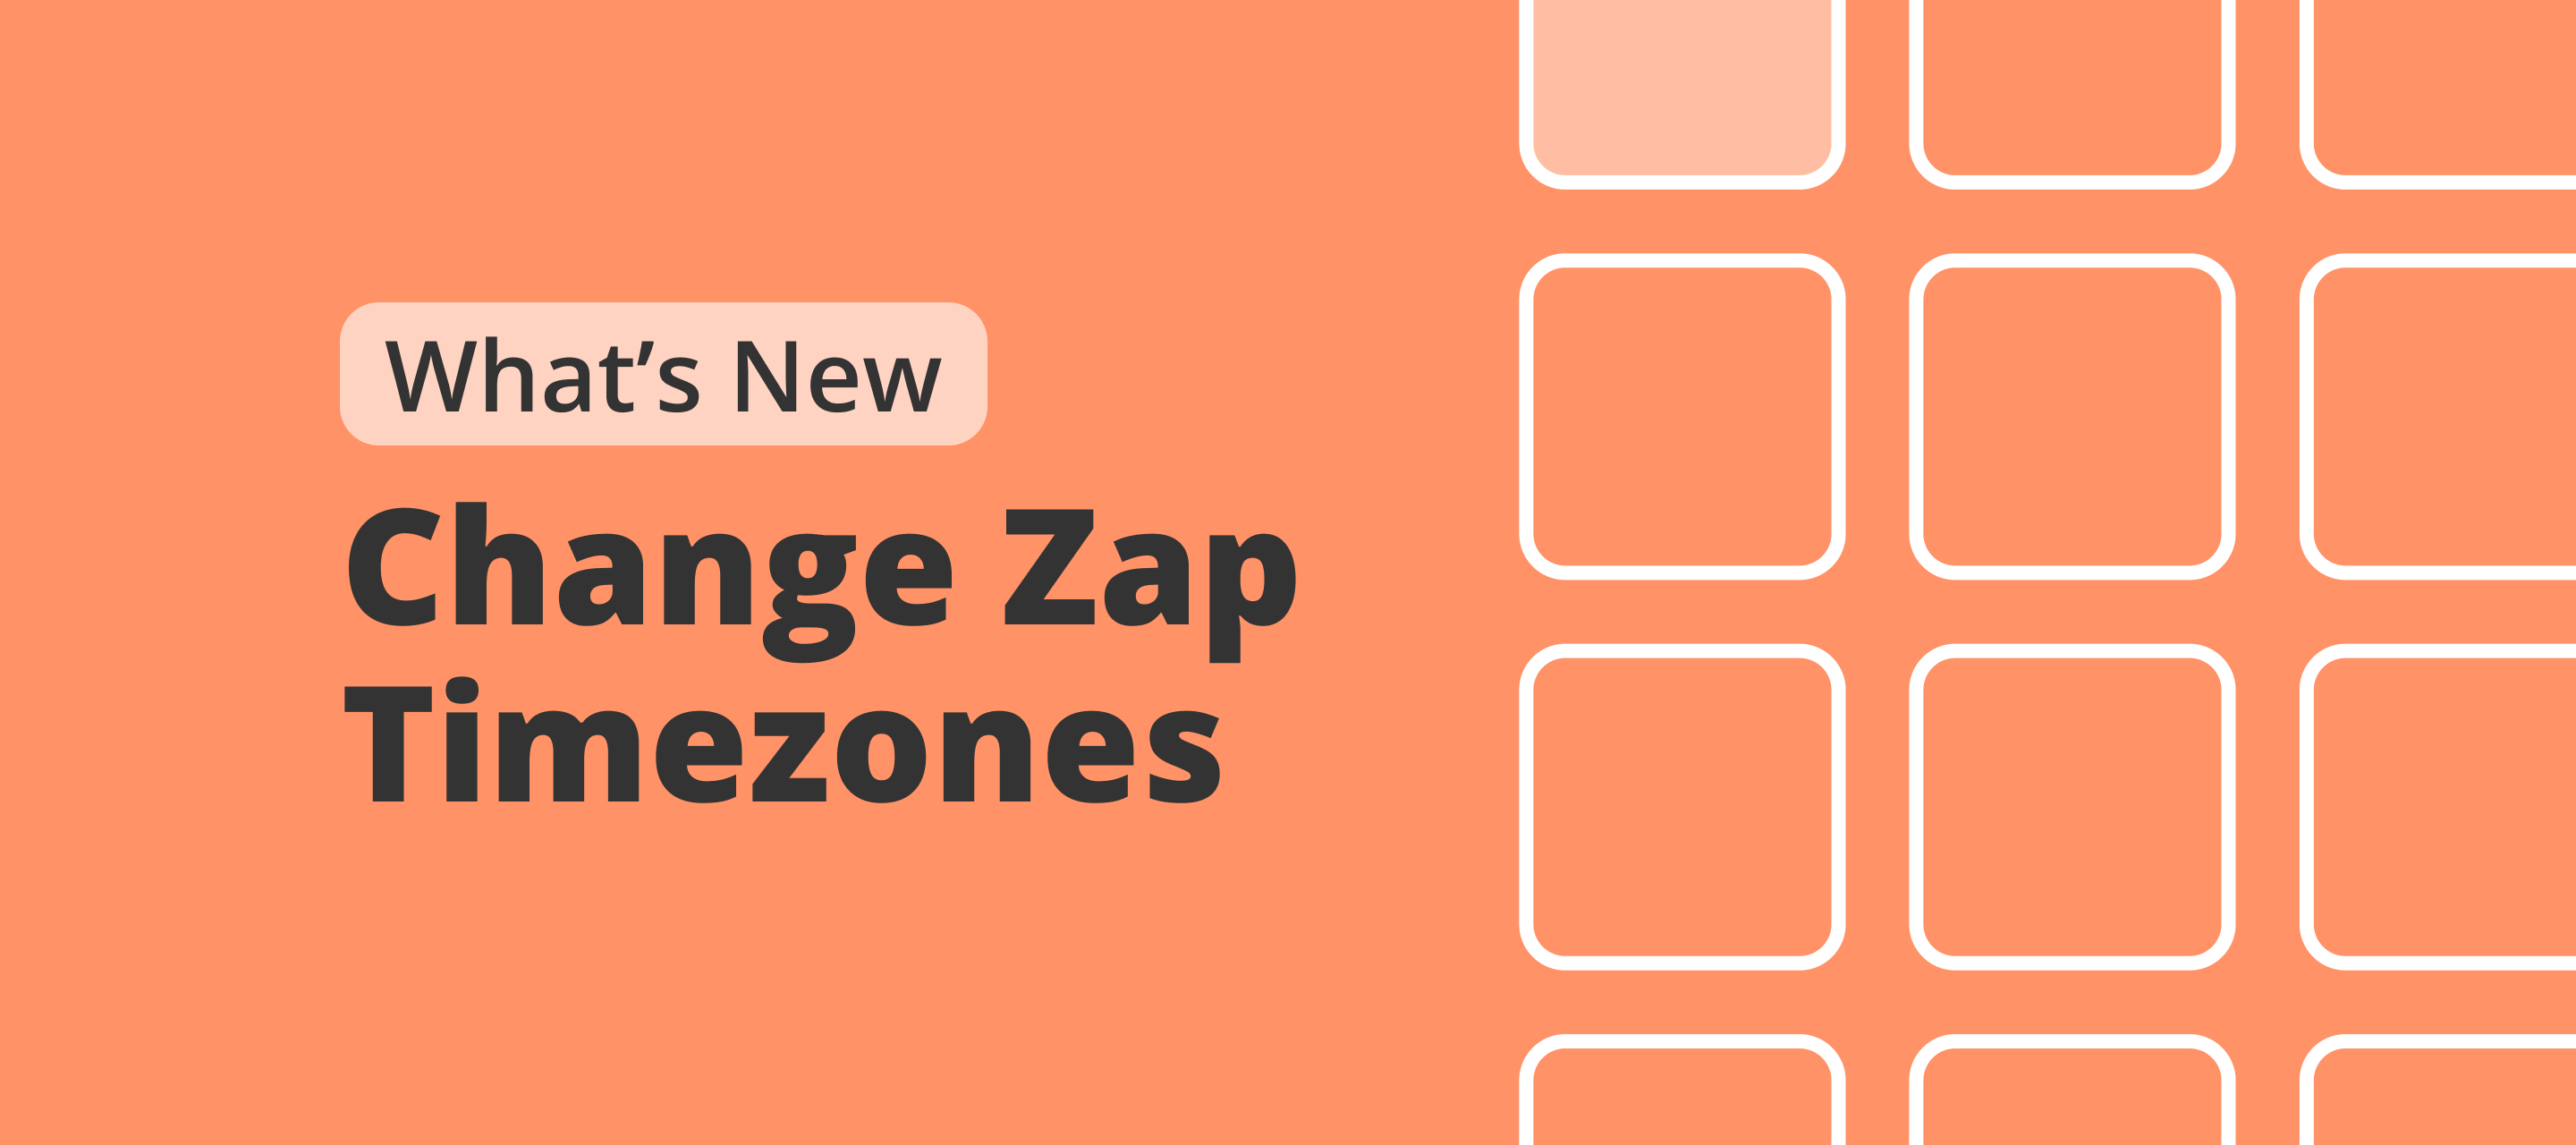 Zap timezones can now be changed!